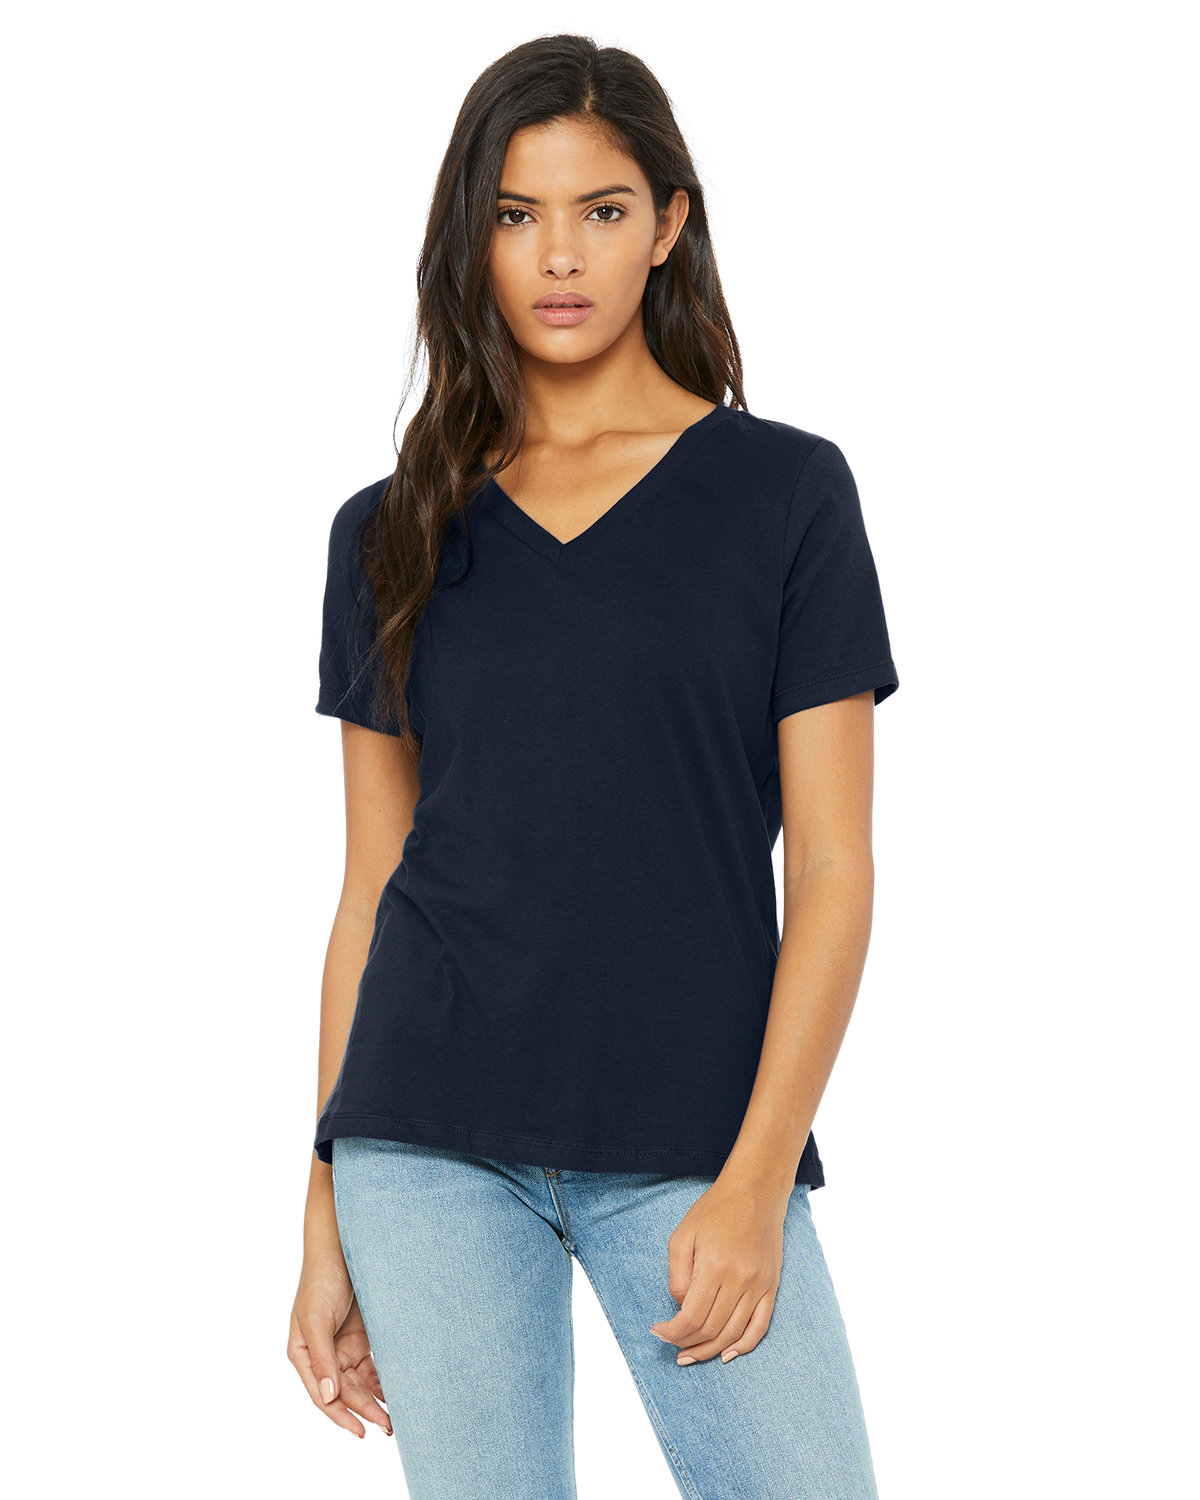 Bella + Canvas Ladies' Relaxed Jersey V-Neck T-Shirt NAVY